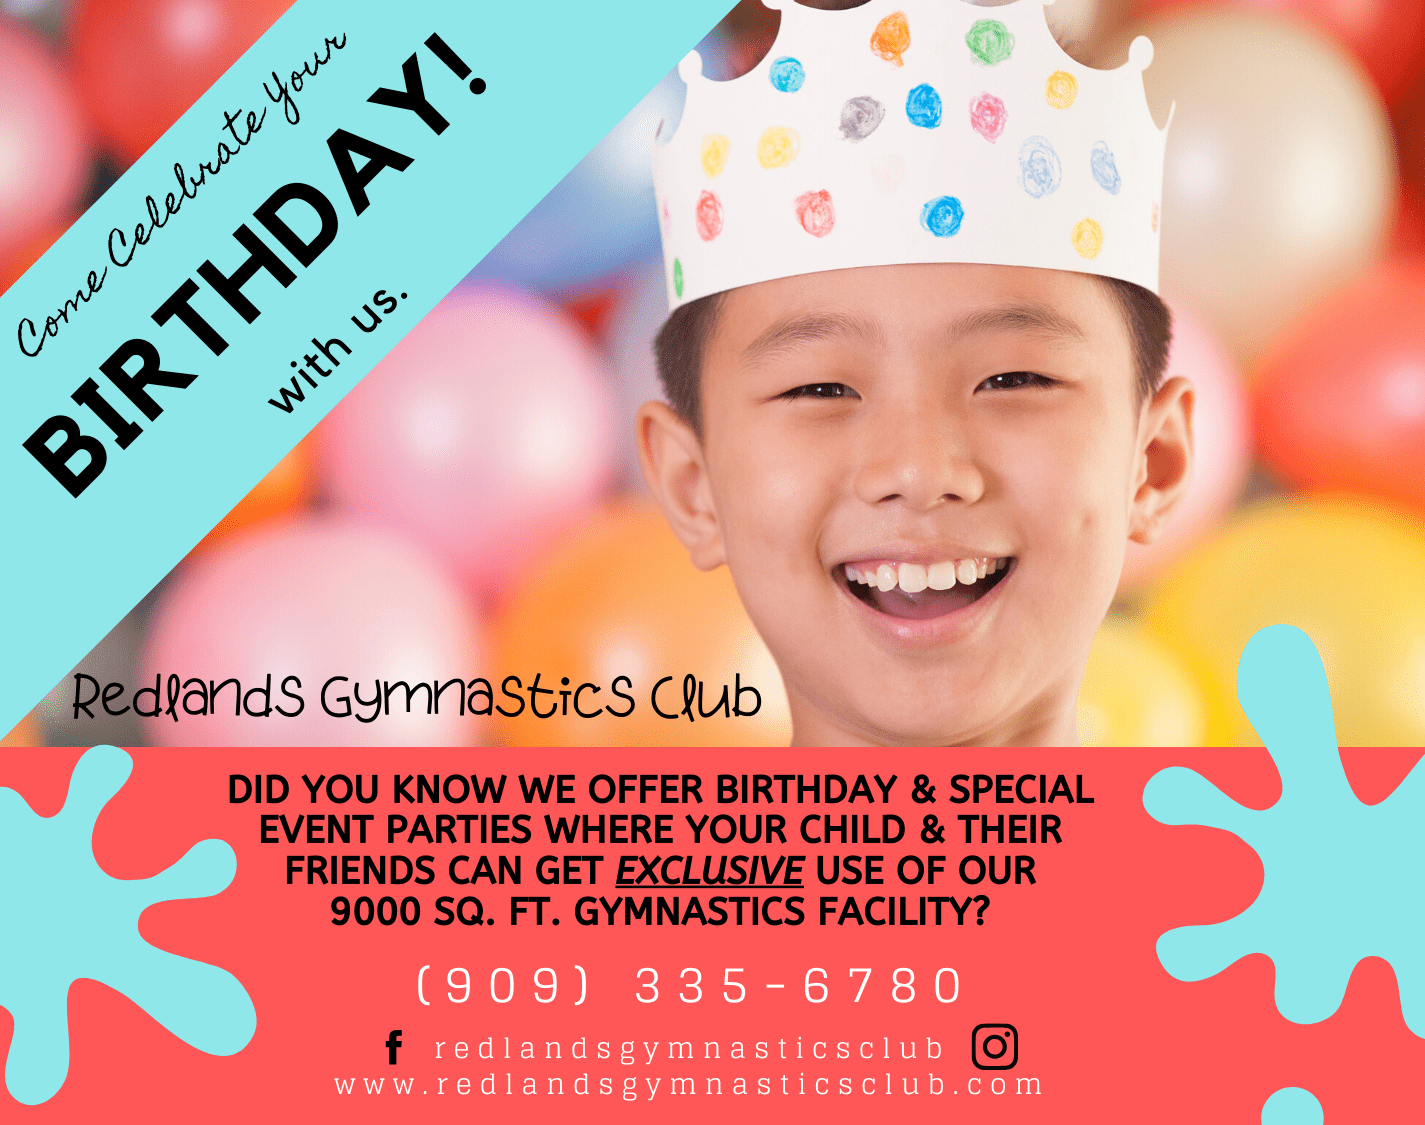 Come Celebrate Your Birthday With Us